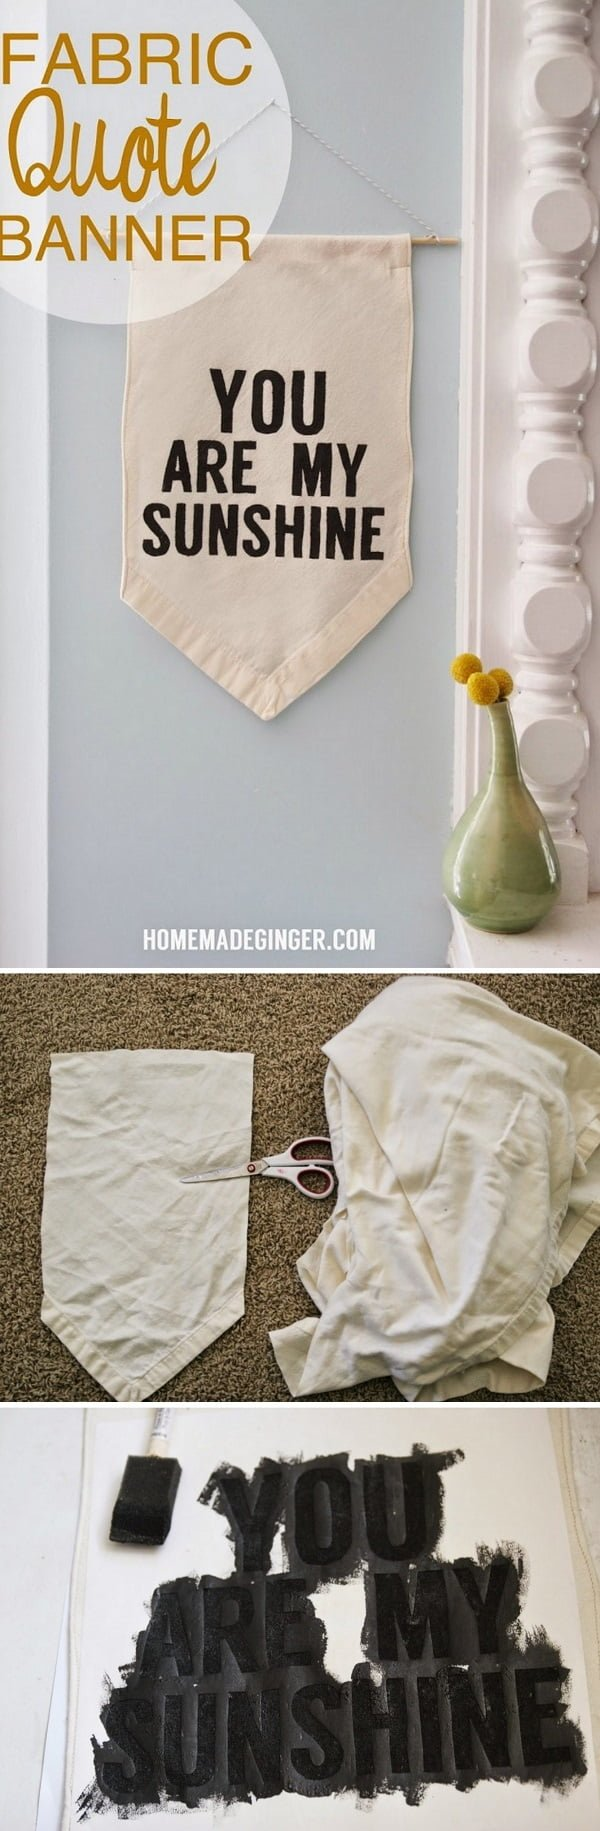 Check out this easy idea on how to make a #DIY fabric quote banner #homedecor for #renters #crafts #project